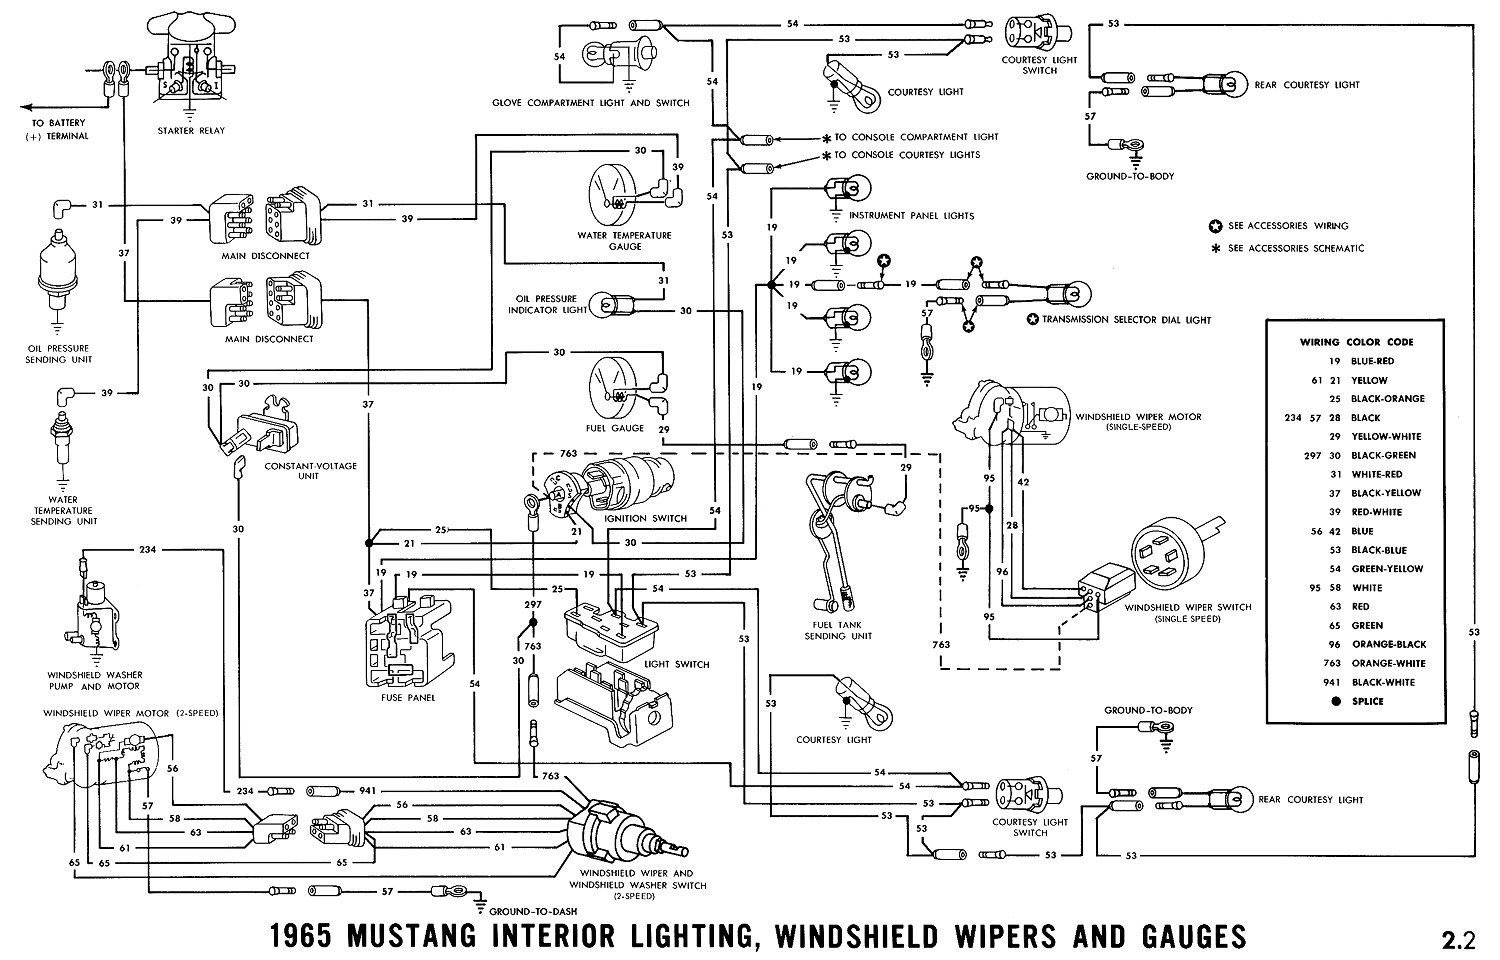 65 mustang wiring diagram free 65 mustang wiring diagram wiring rh hg4 co 1966 mustang headlight switch wiring diagram 1966 mustang headlight wiring diagram